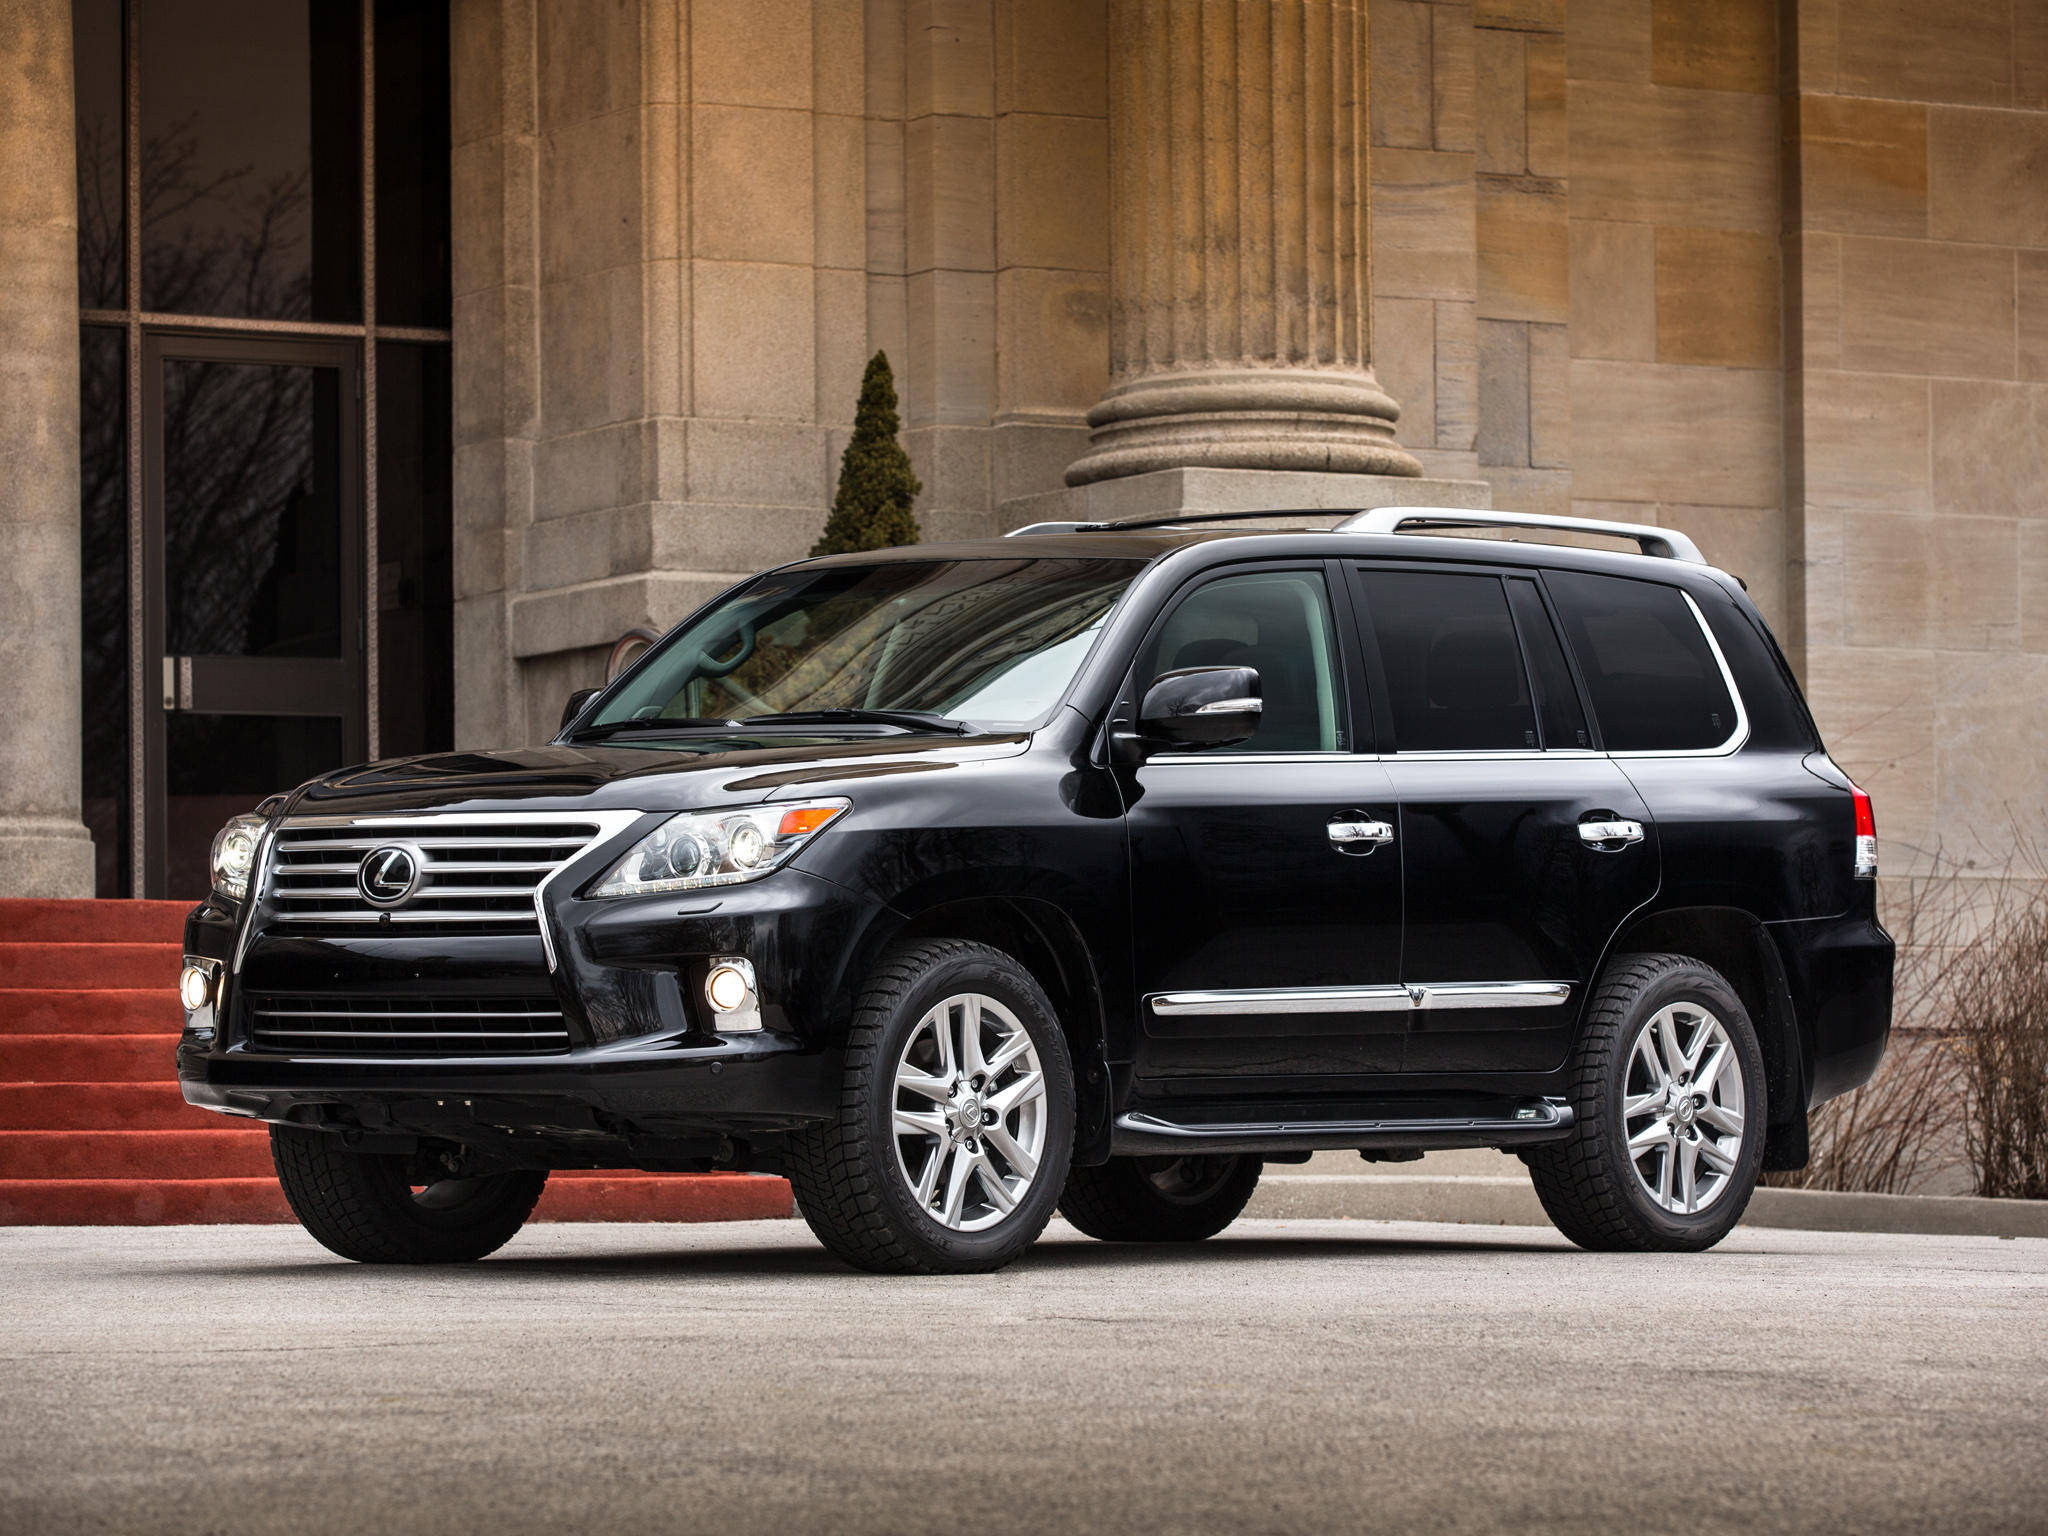 6 Lexus Lx Hd Wallpapers Background Images Wallpaper Abyss